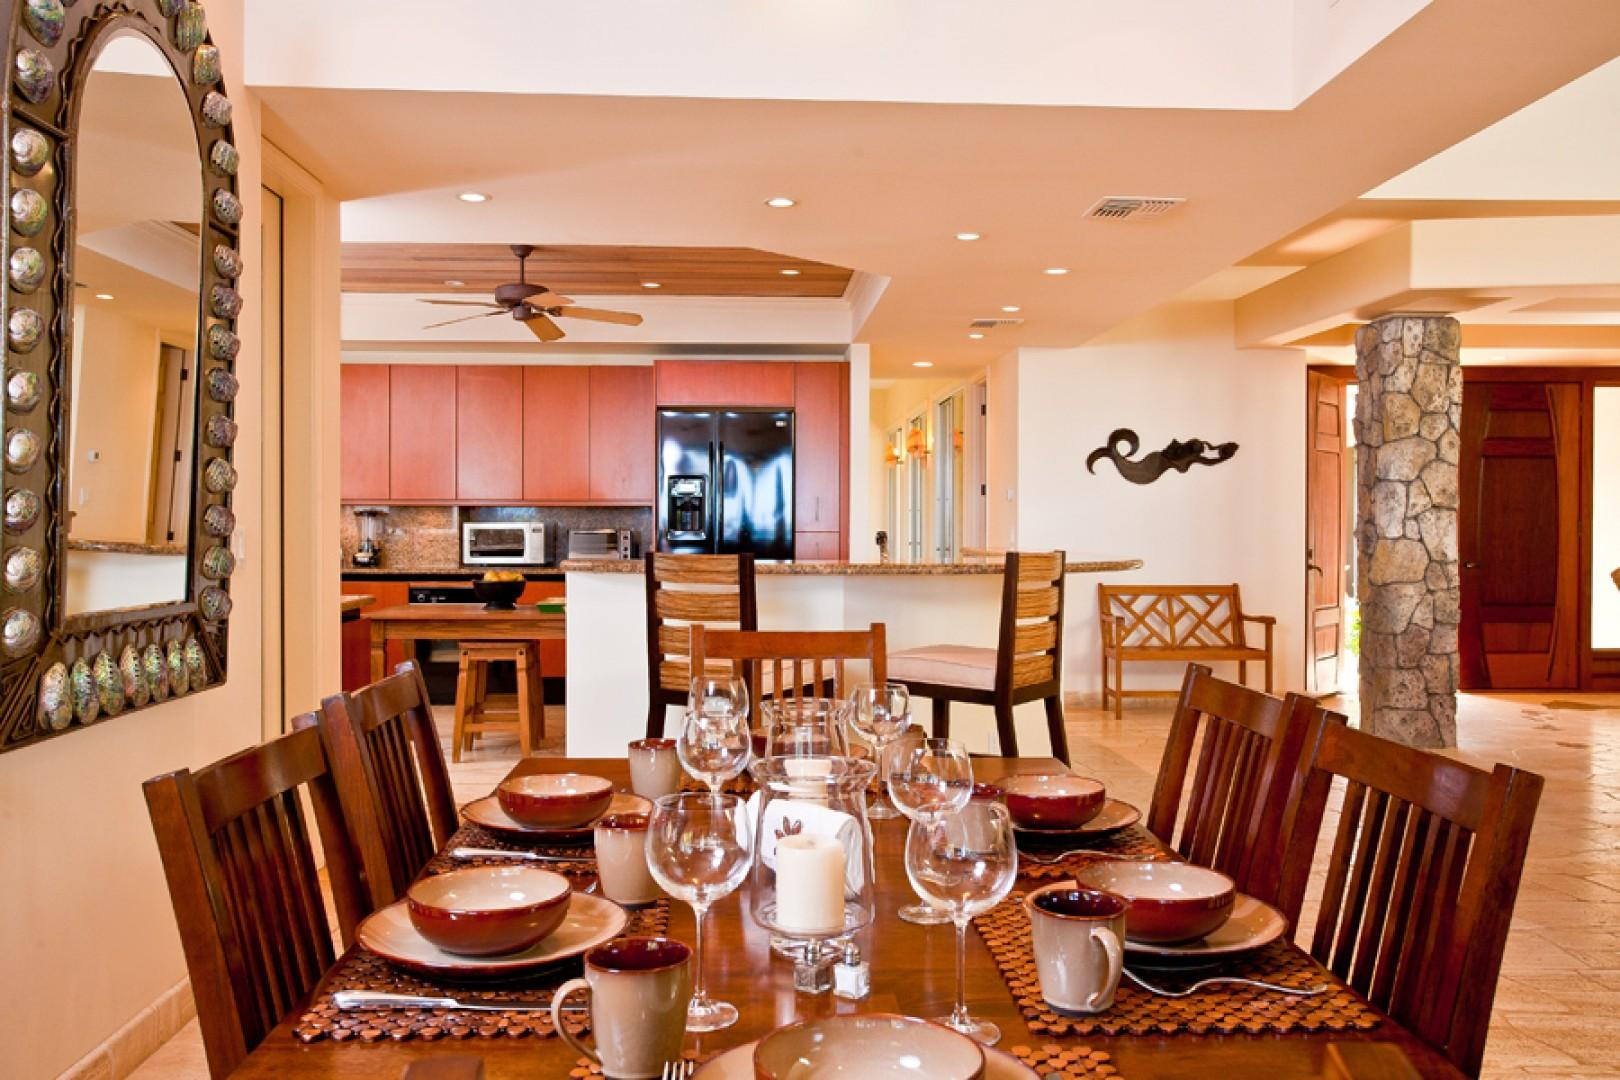 Sea Shells Beach House - Indoor Dining For Six with View of TV and Kitchen